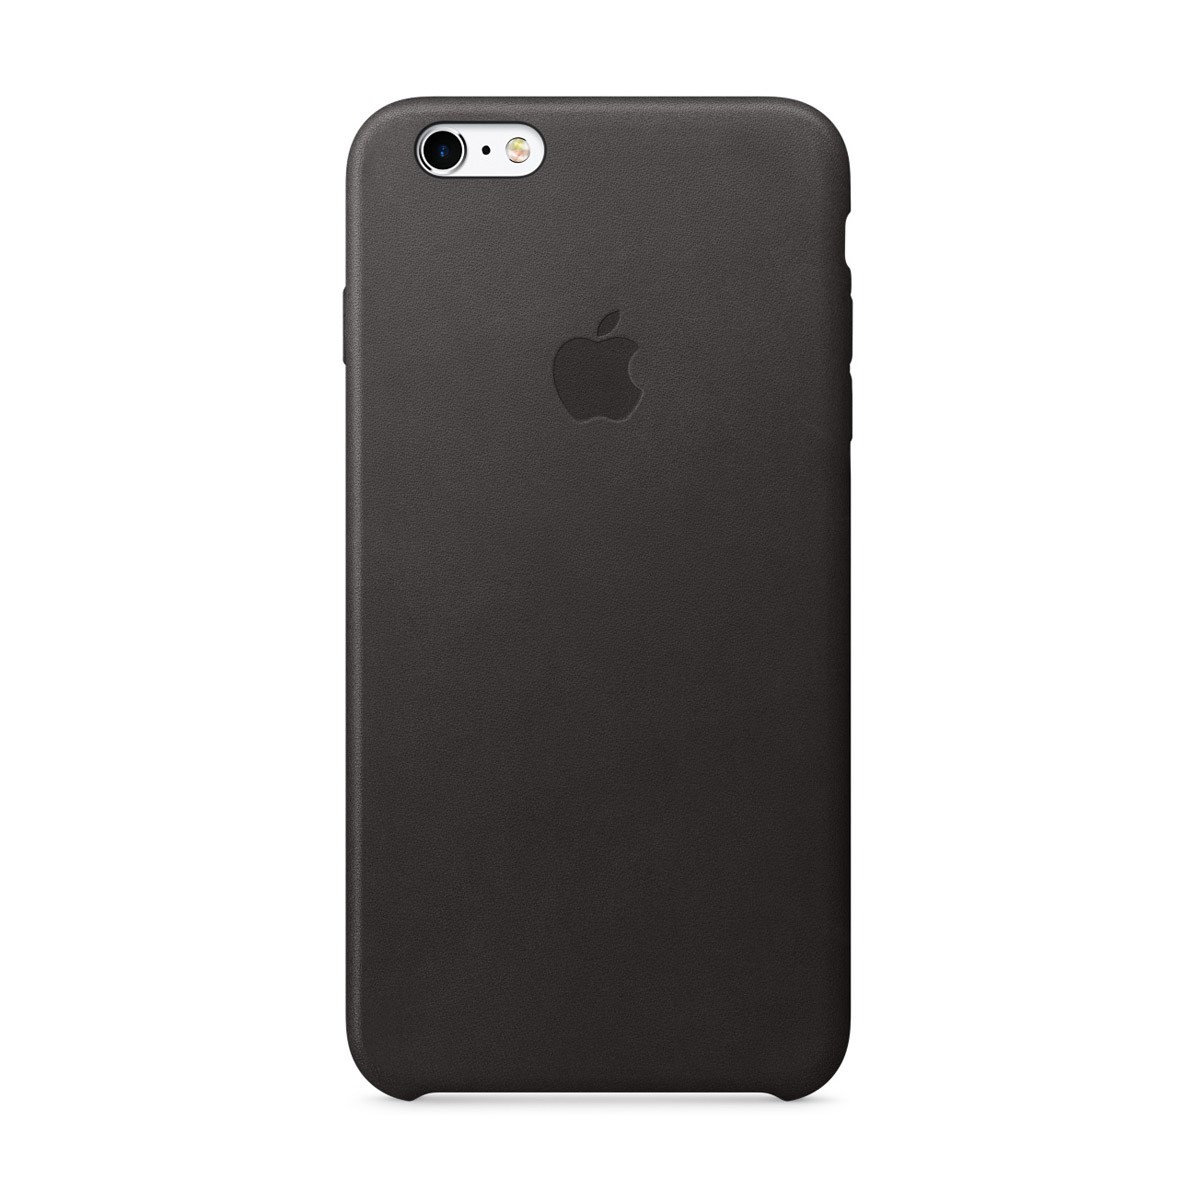 apple iphone 6s plus leather case istyle apple premium resellerapple iphone 6s plus leather case black